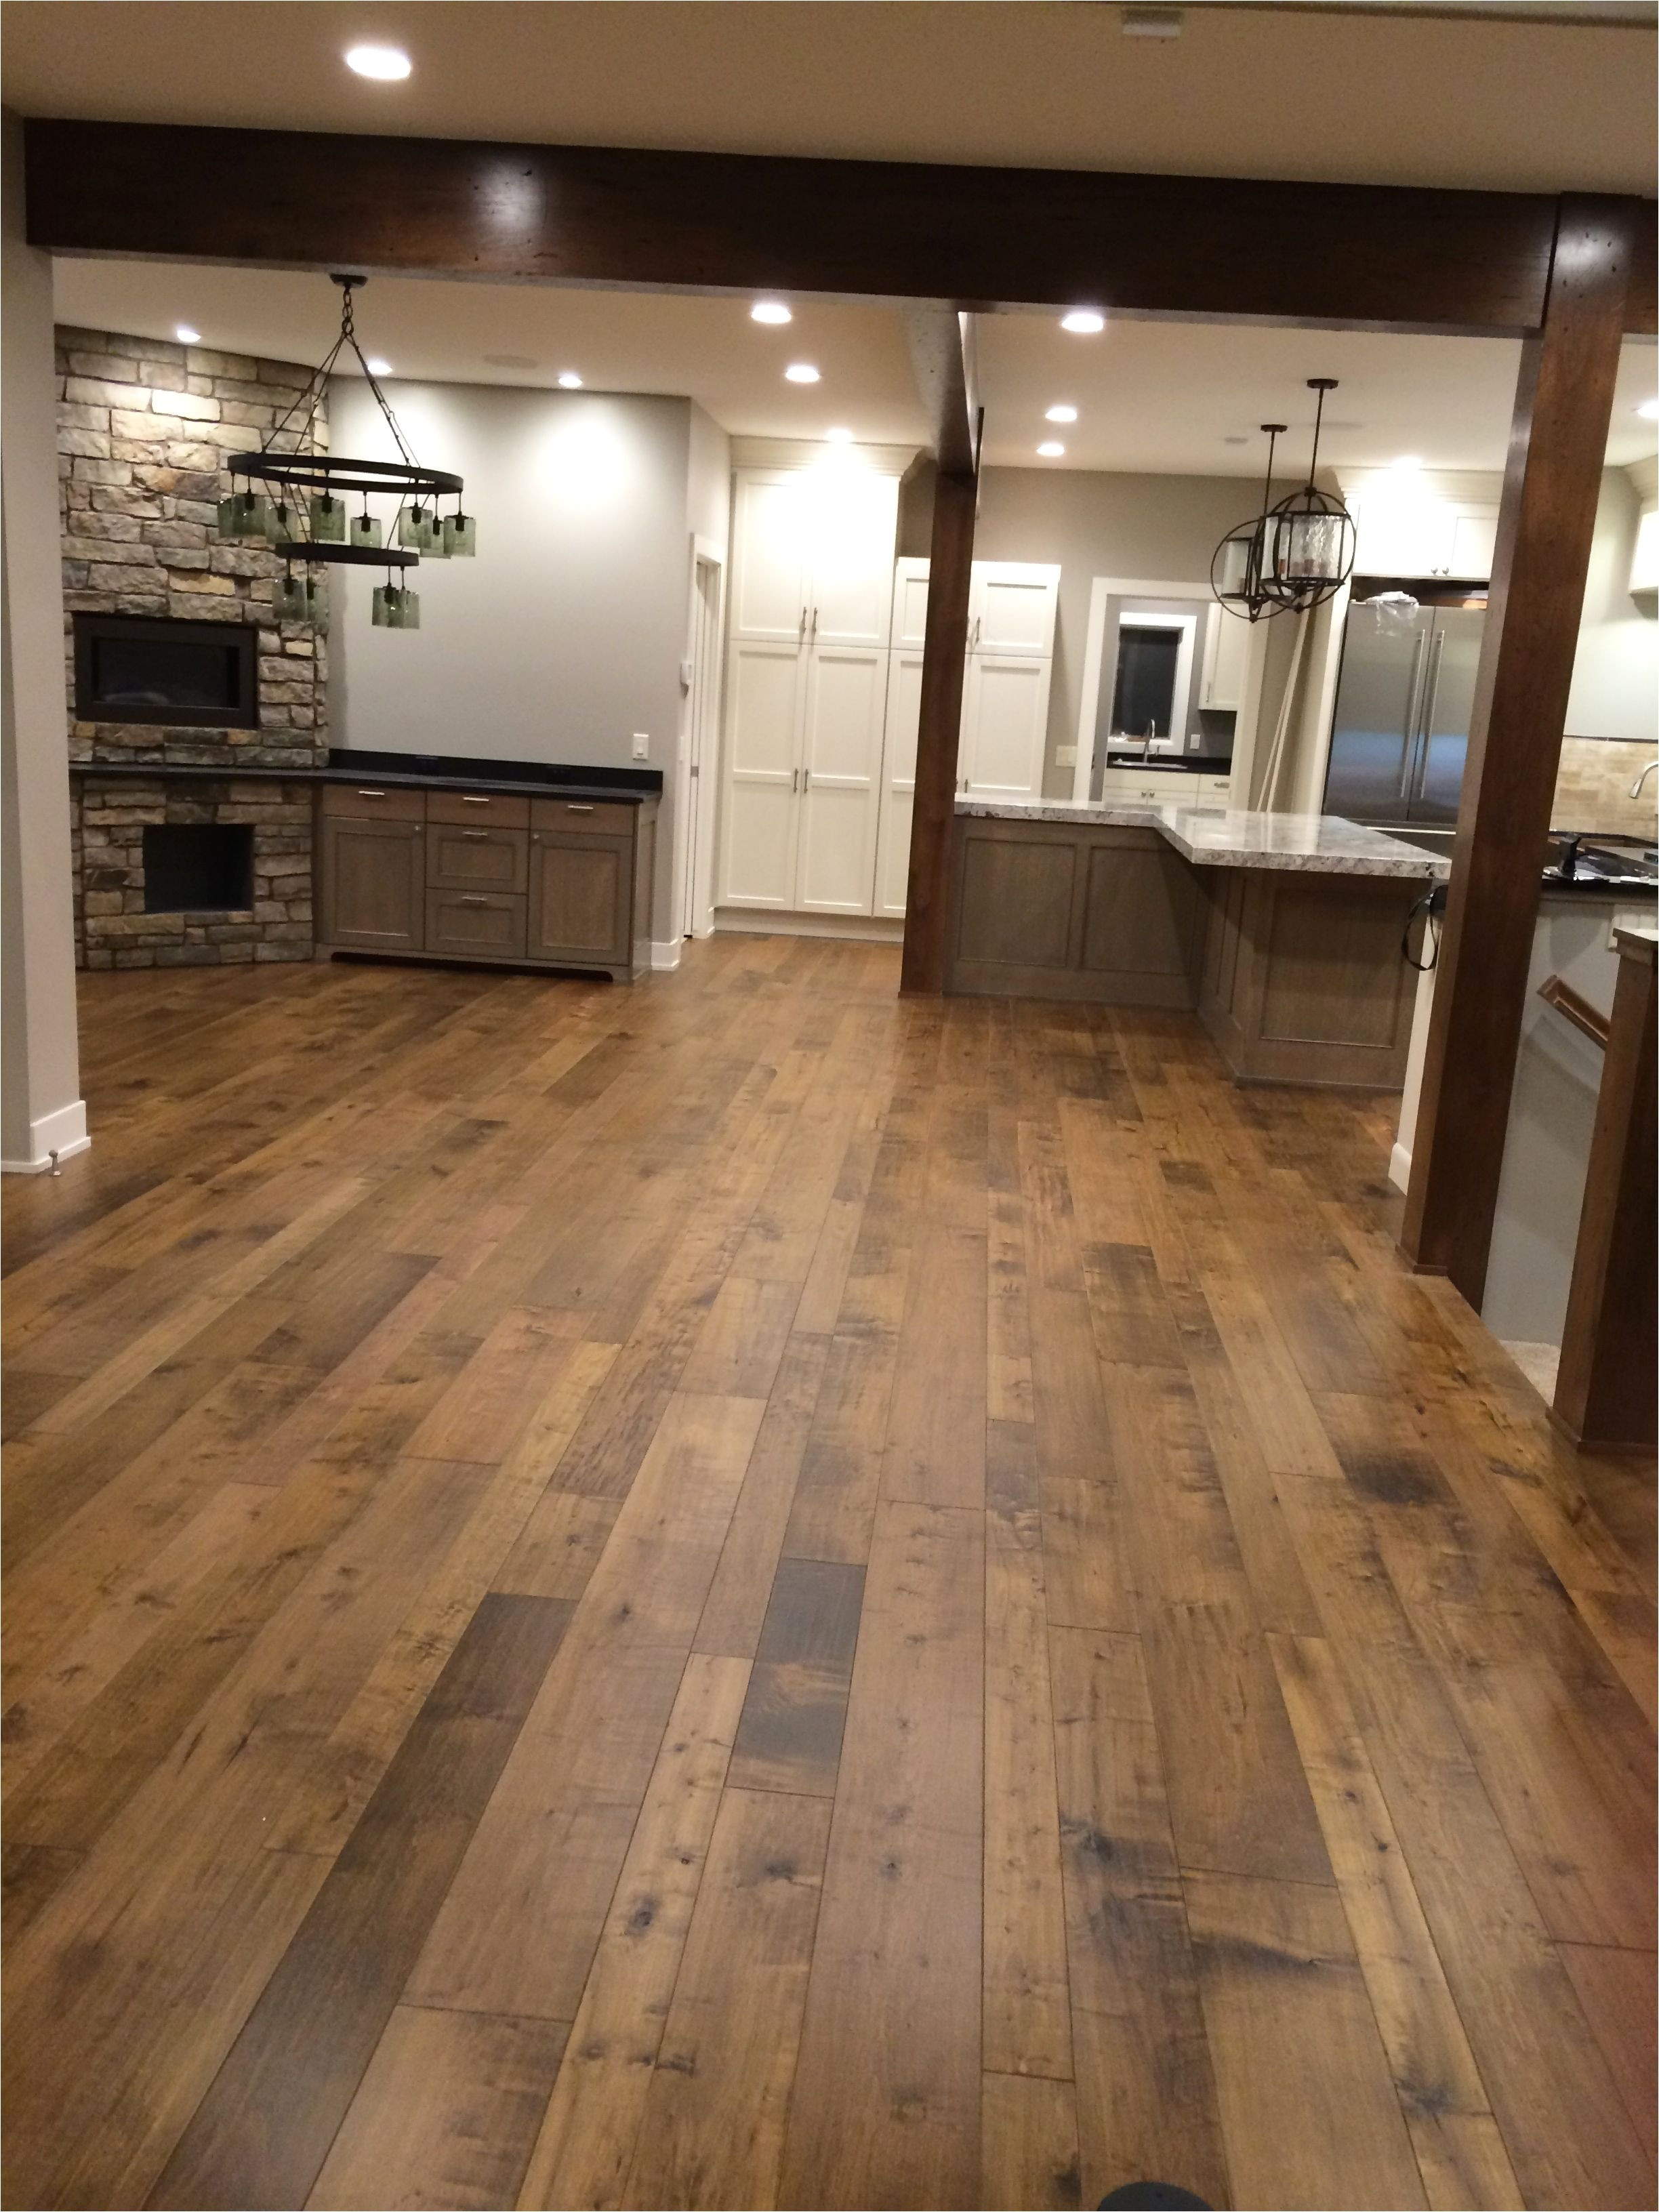 click hardwood flooring vs laminate of 32 luxury can i stain laminate flooring images flooring design ideas in hardwood flooring stores near me hardwood flooring panies near me